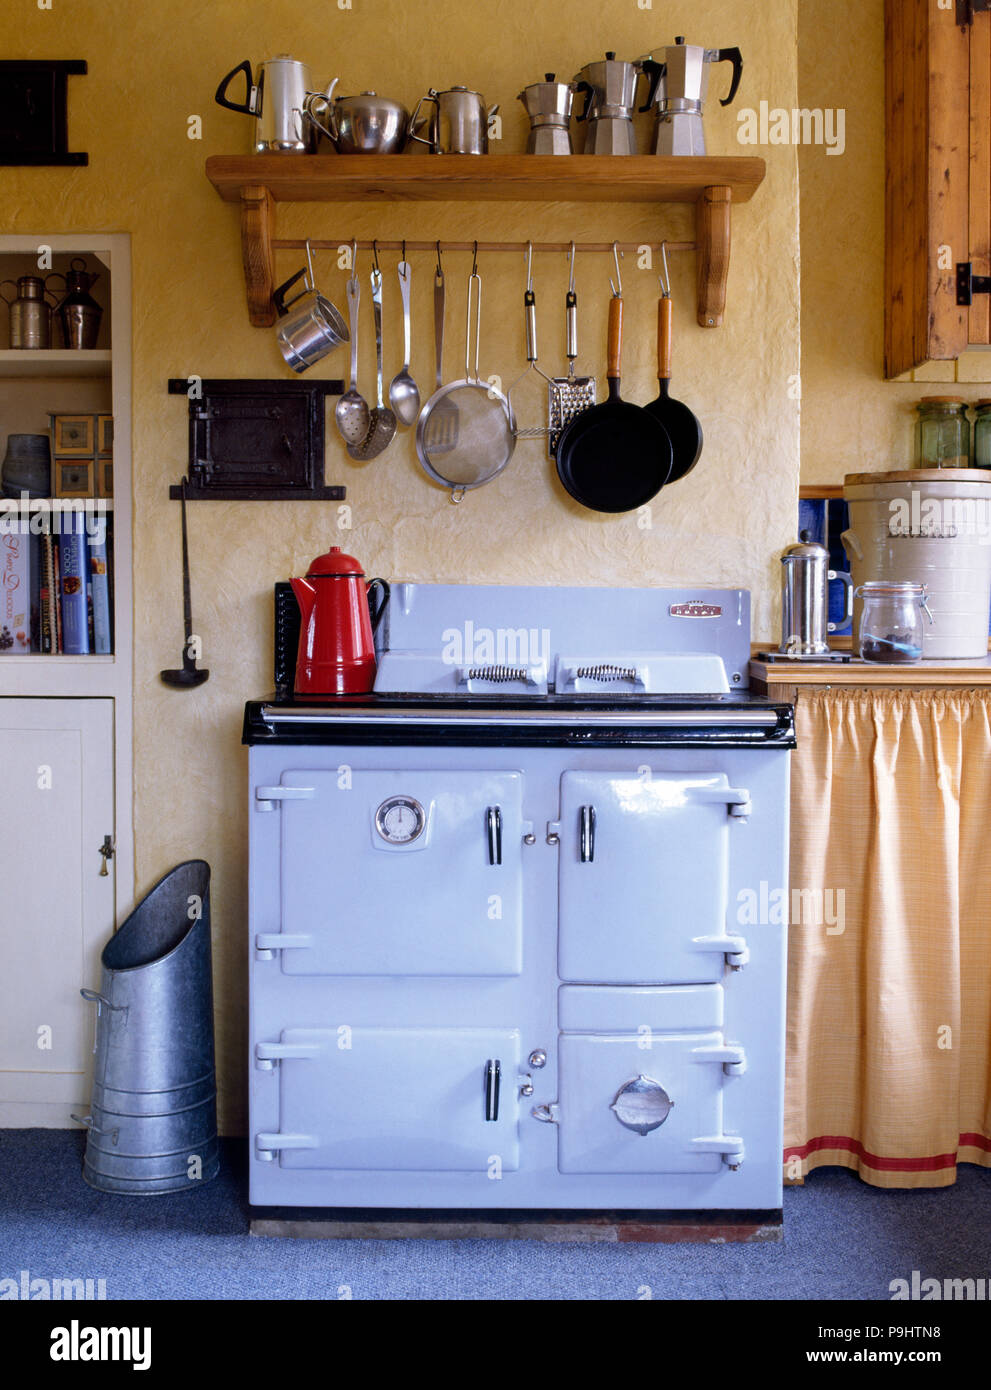 White Aga oven below a pine shelf with a row of Moka coffee pots   in a cottage kitchen with a galvanized zinc coal hod - Stock Image